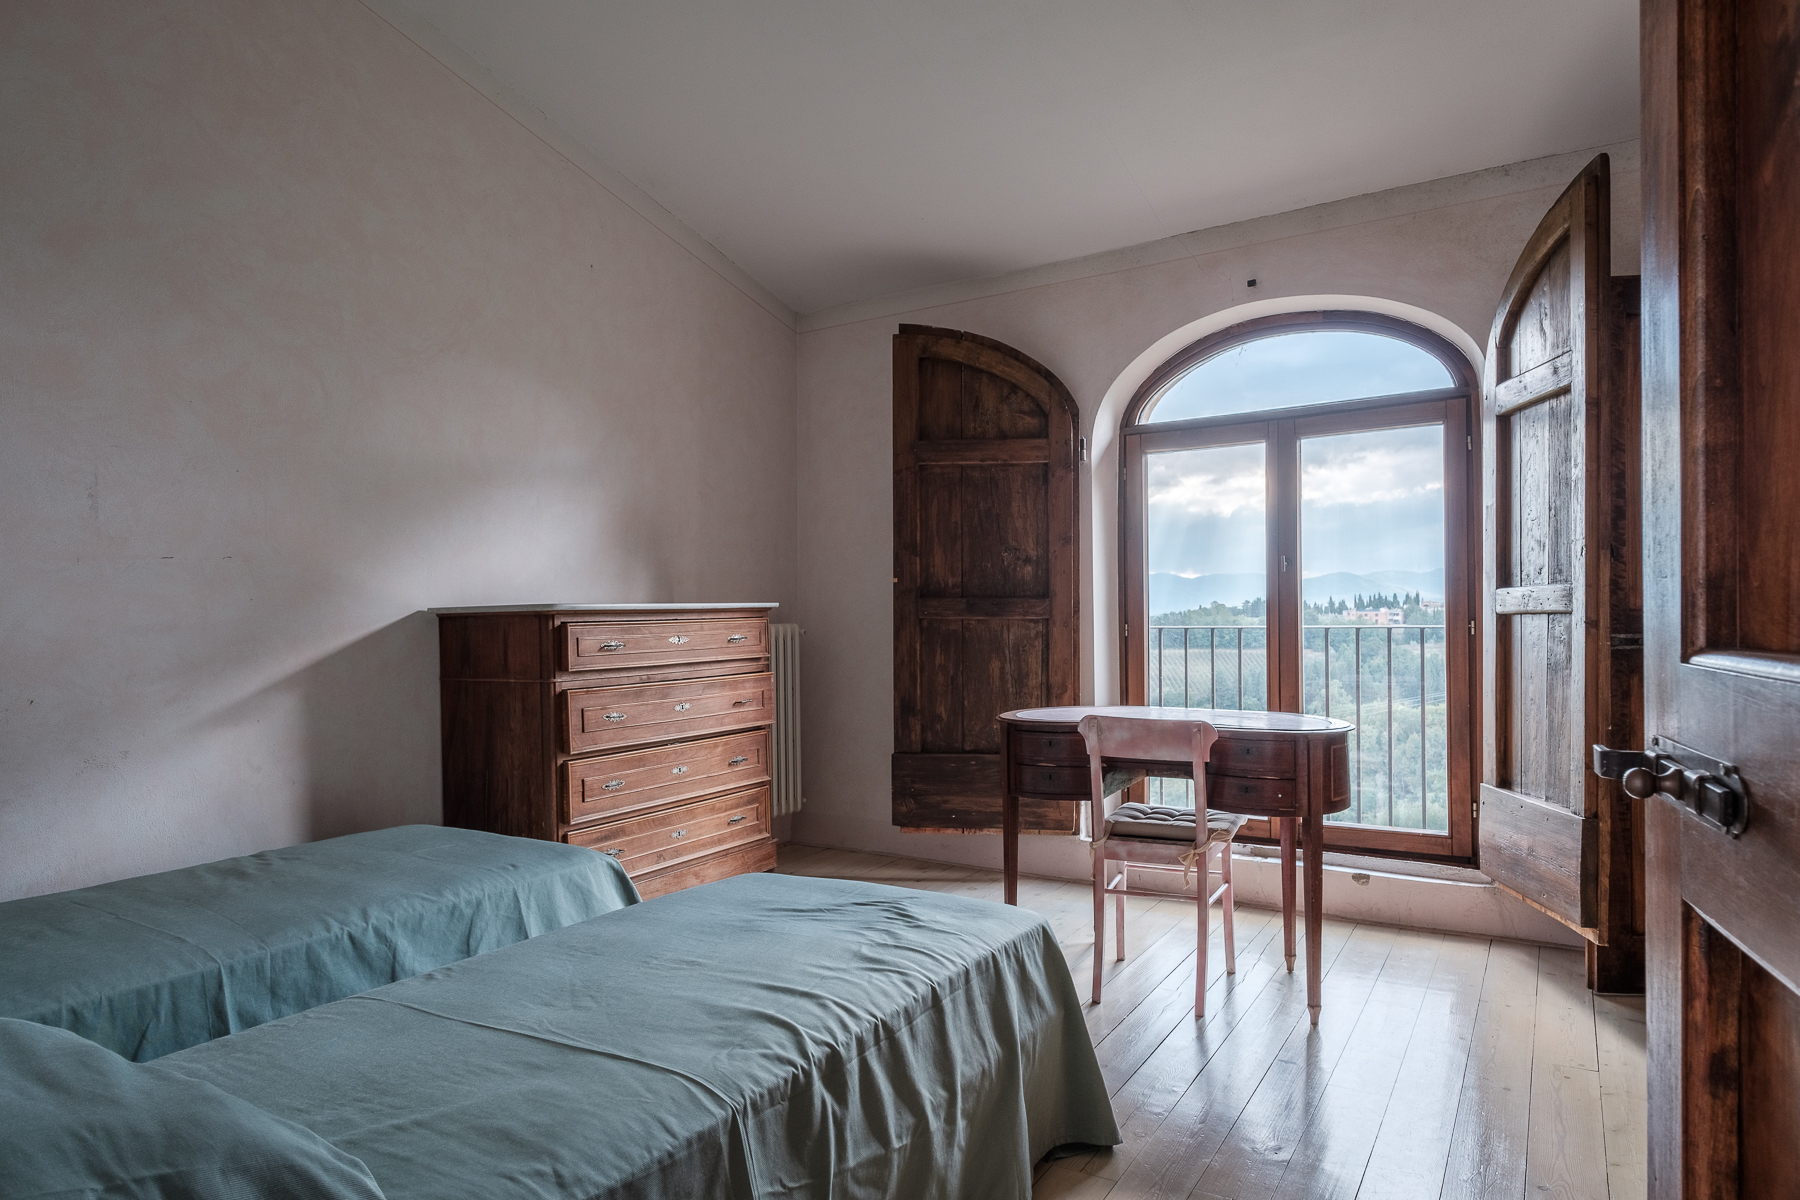 Additional photo for property listing at Splendid apartment in villa Via Gentilino San Casciano In Val Di Pesa, Florence 50026 Italy